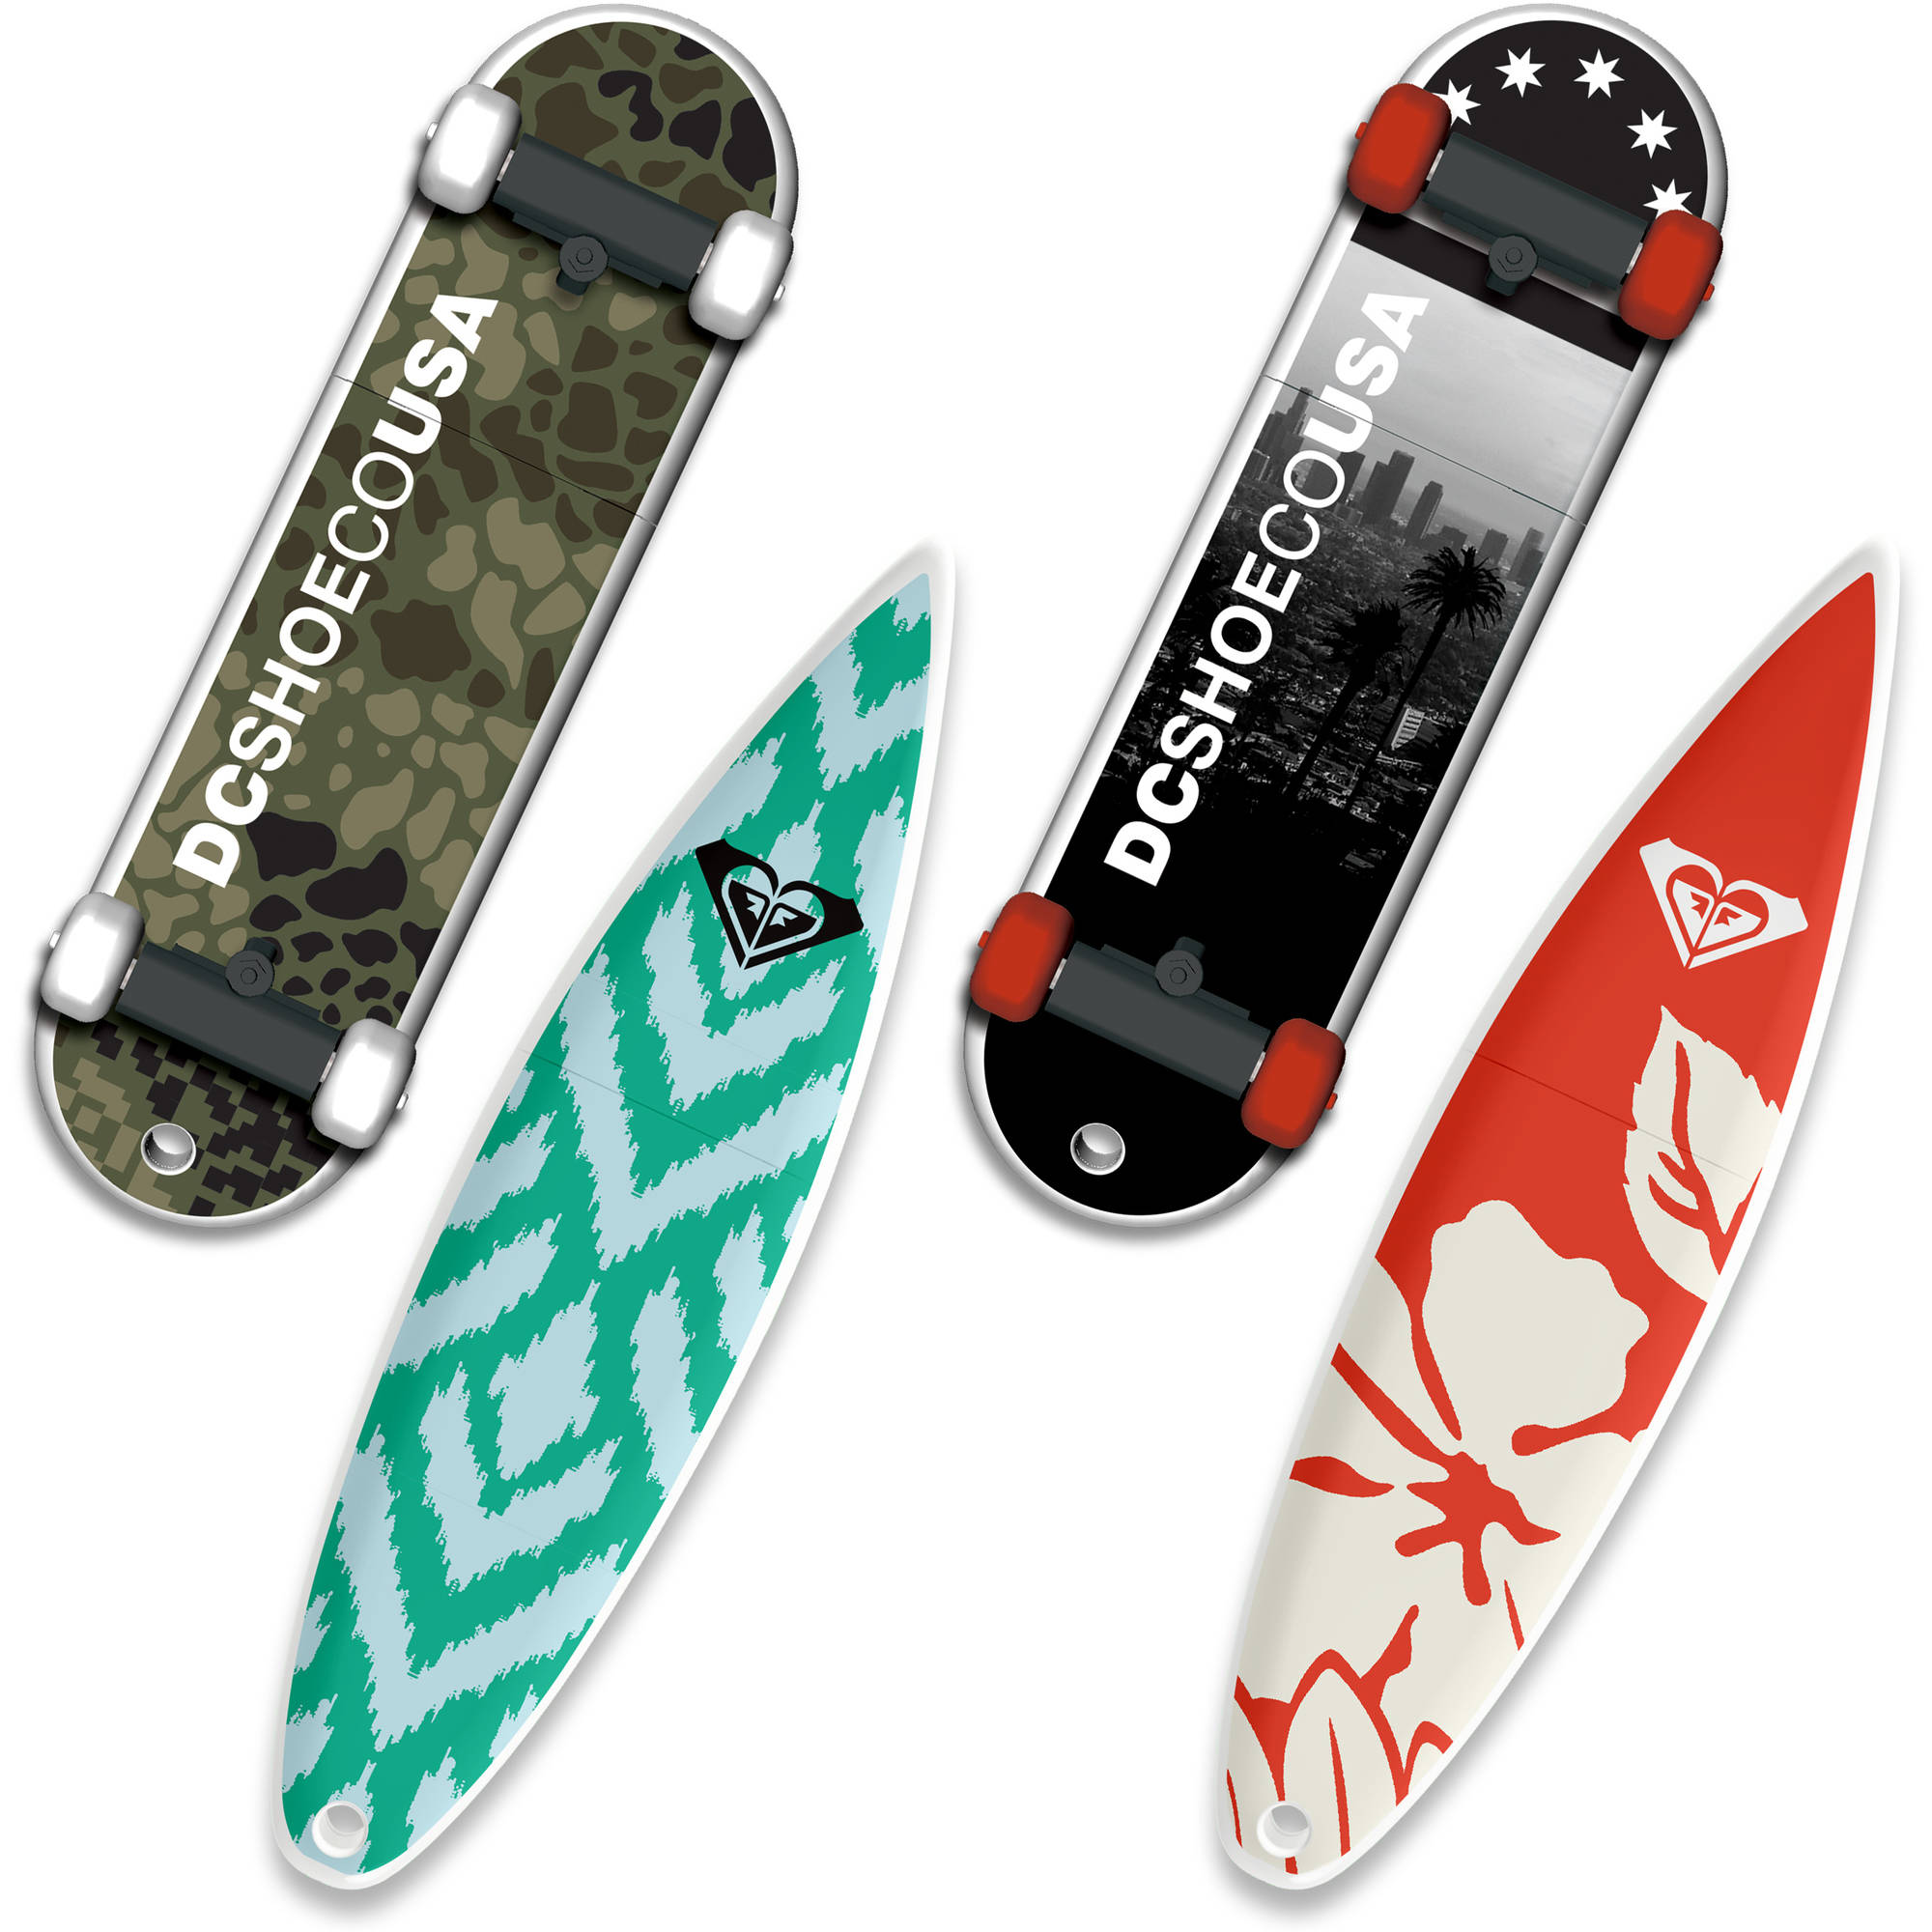 Image of 16GB EP ASD USB, DC Shoes SkateDrive and Roxy SurfDrive, 4-Pack